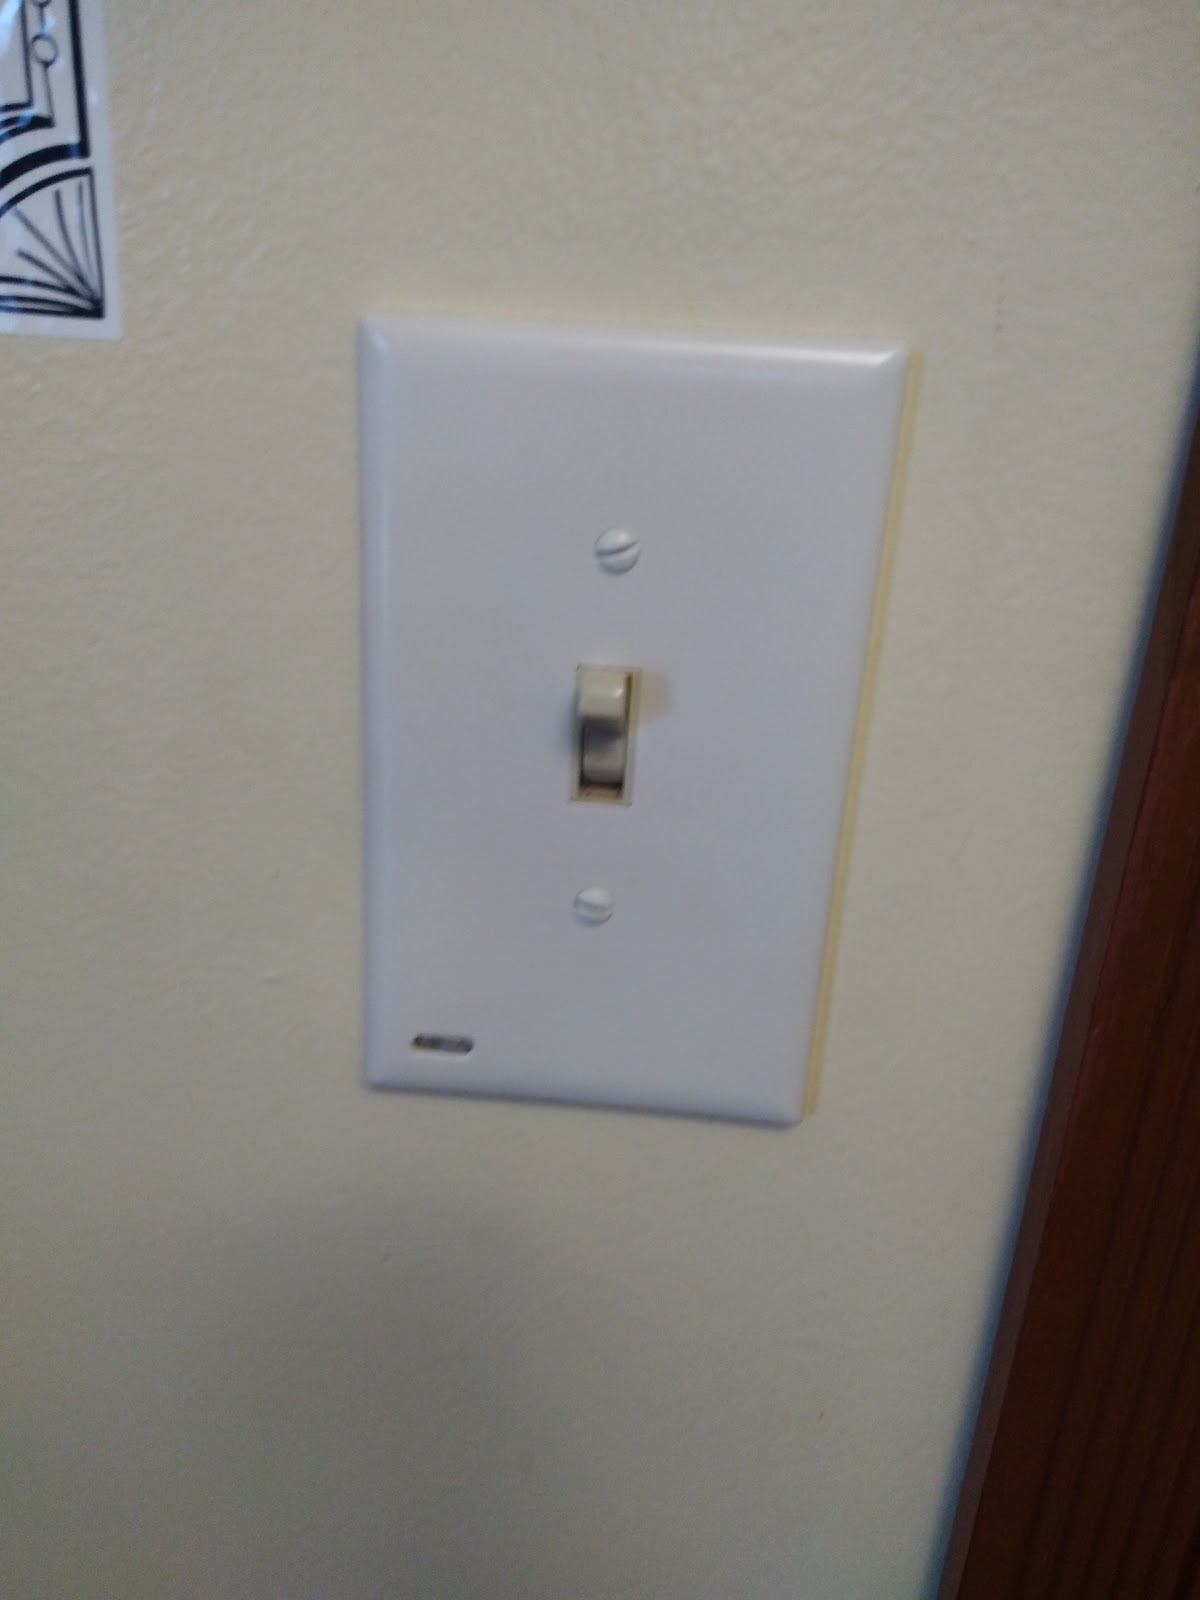 A Nightlight Install So Easy a Monkey Can Do It! @Snap_Power ~ The ...